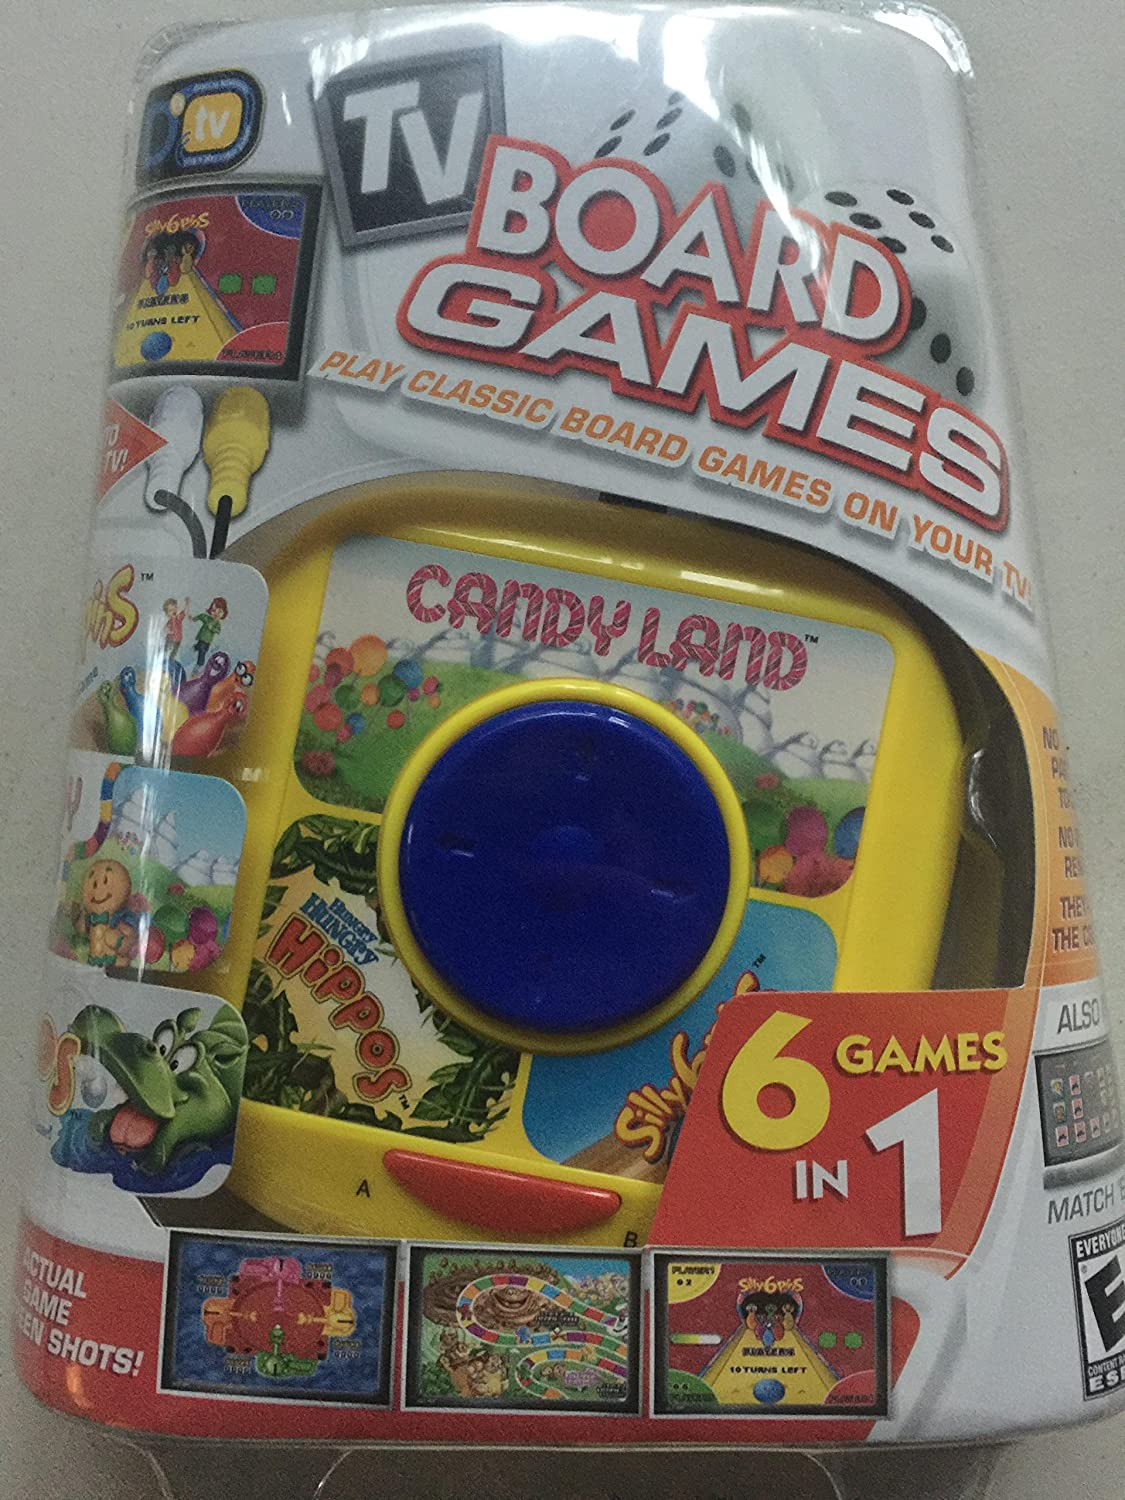 tv BOARD GAMES CANDY LAND 6 GAMES IN 1